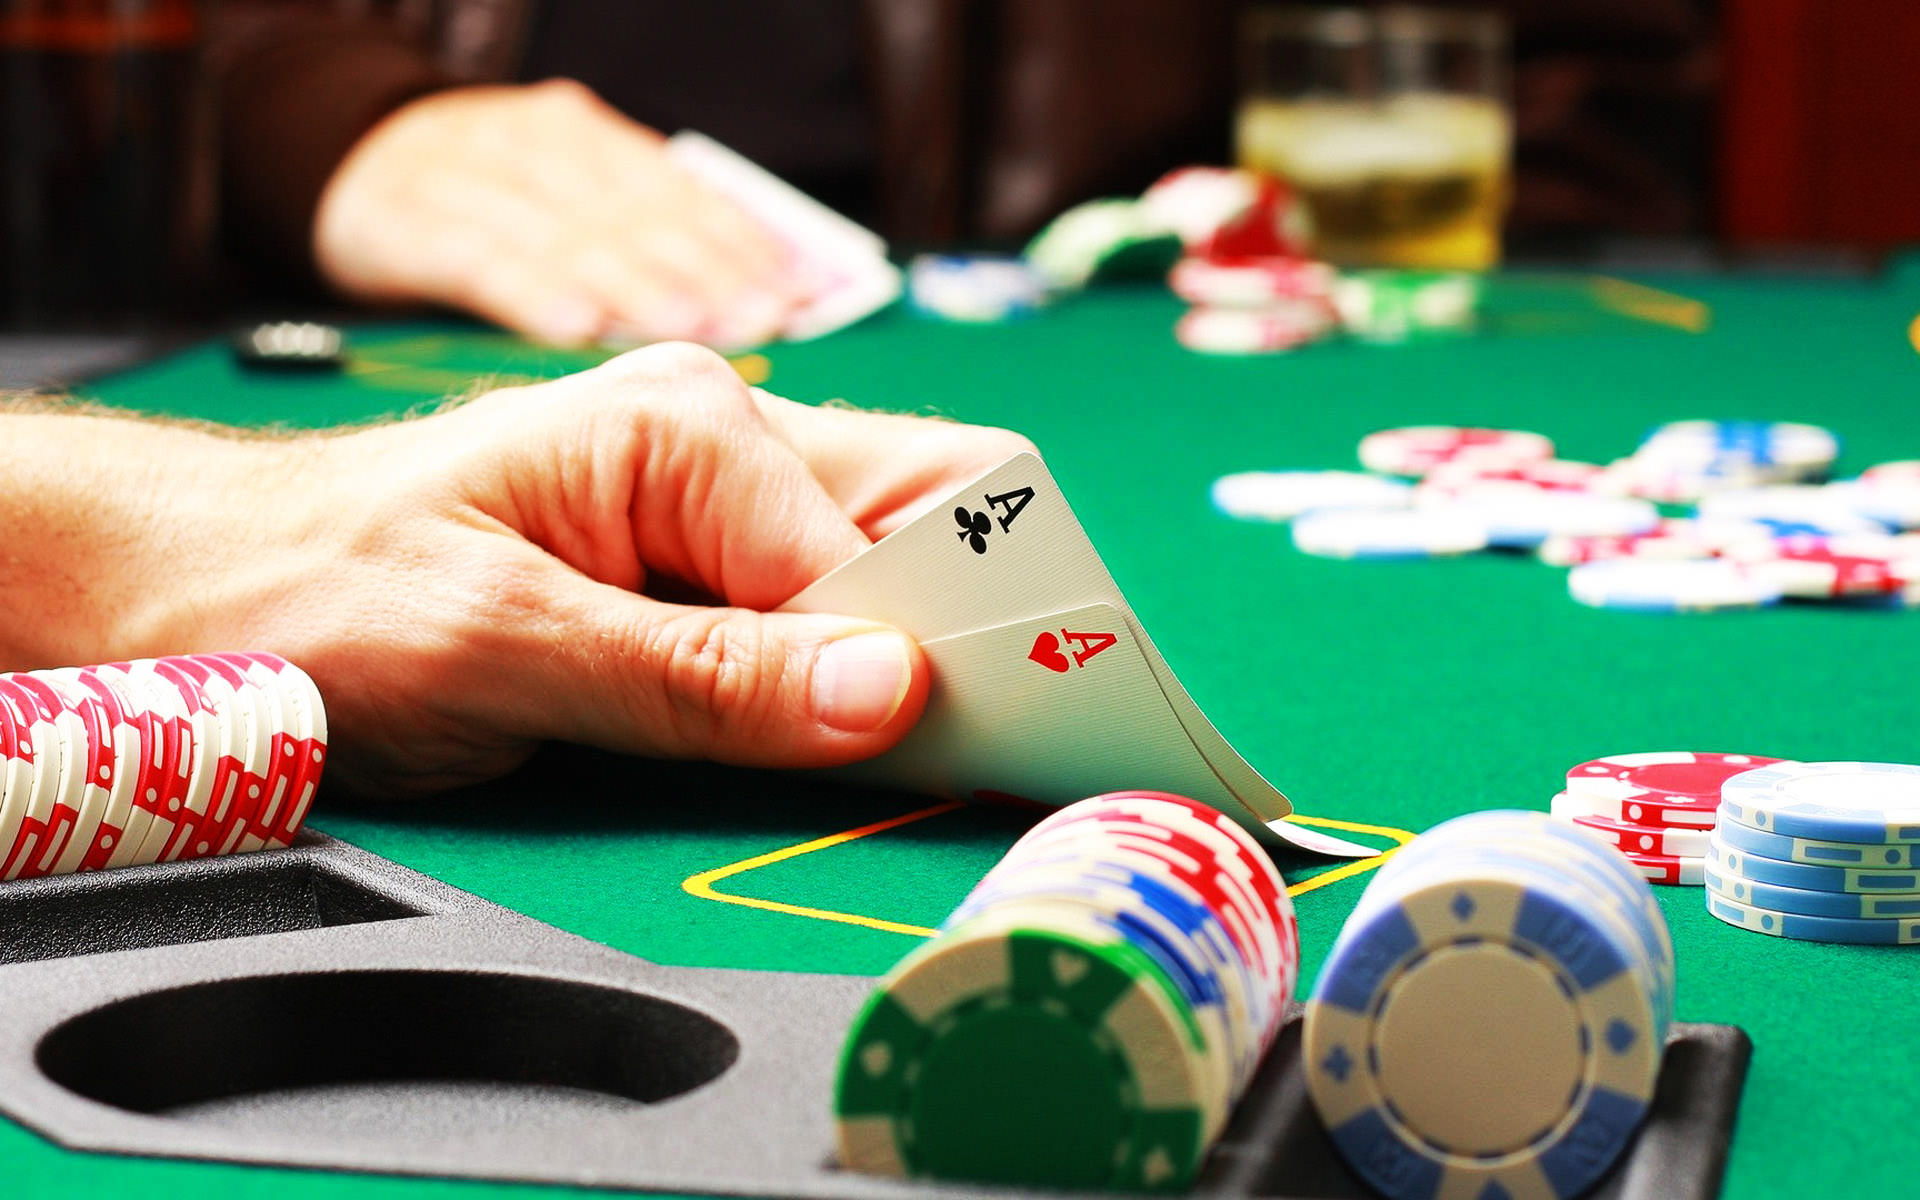 This Acquisition By FanDuel's Parent Company Is Creating An Online Gambling Monster